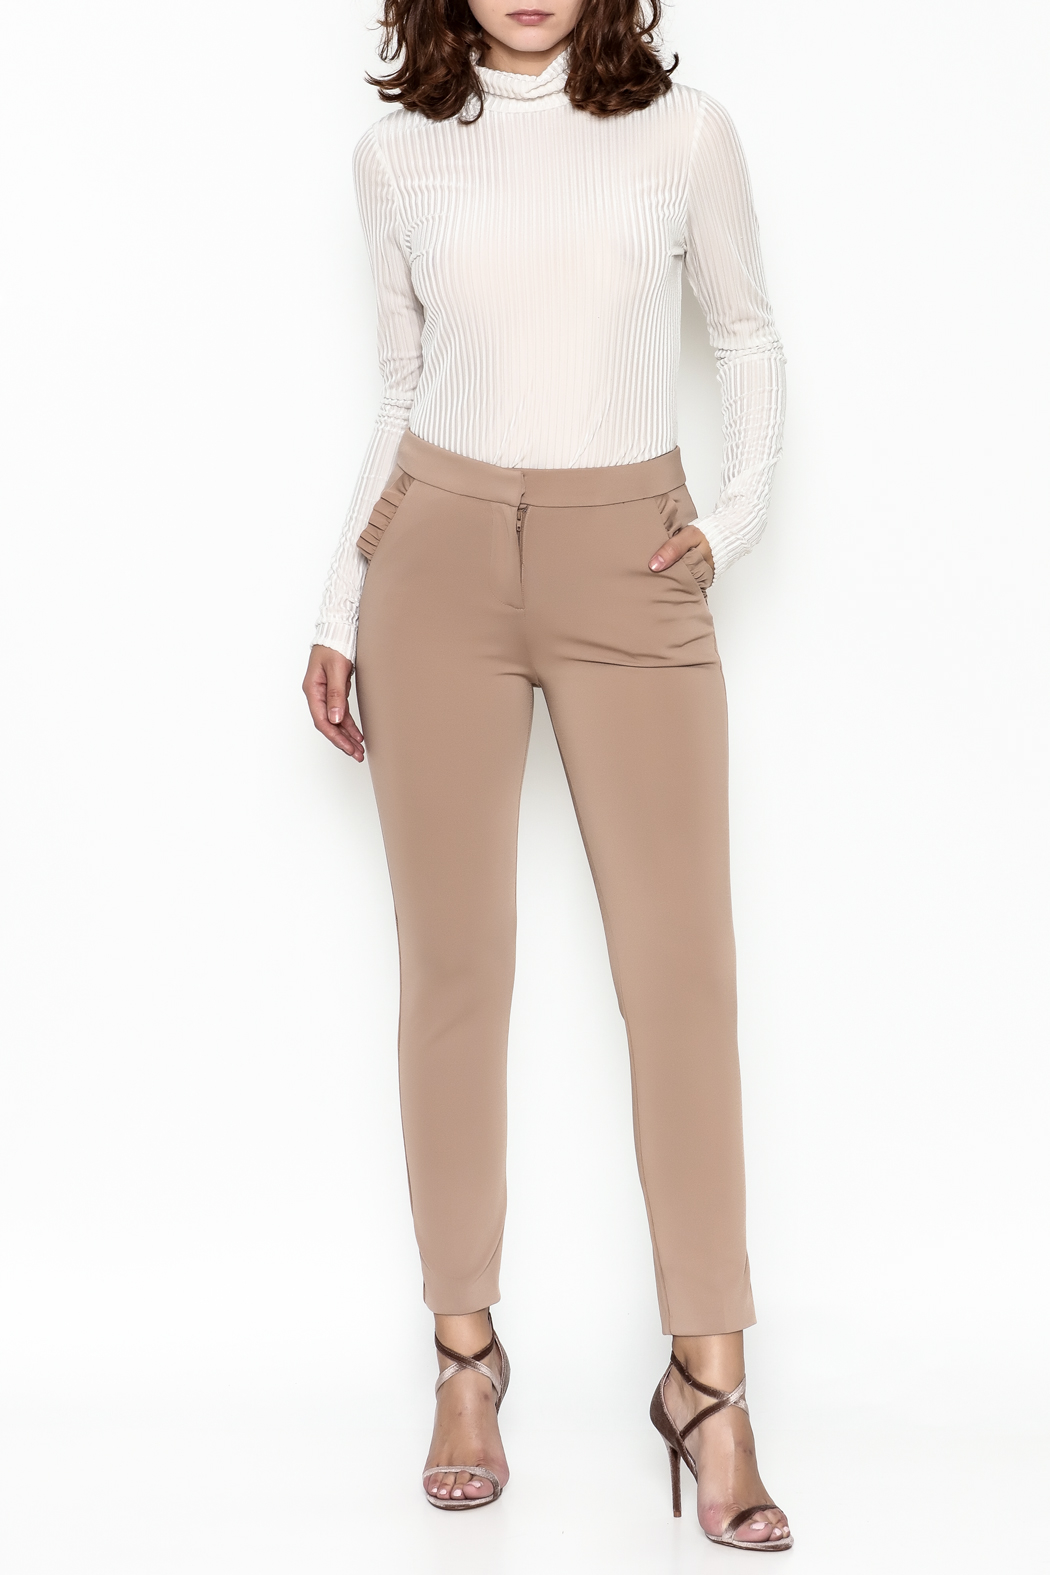 Potter's Pot Ruffle Pocket Trouser - Side Cropped Image